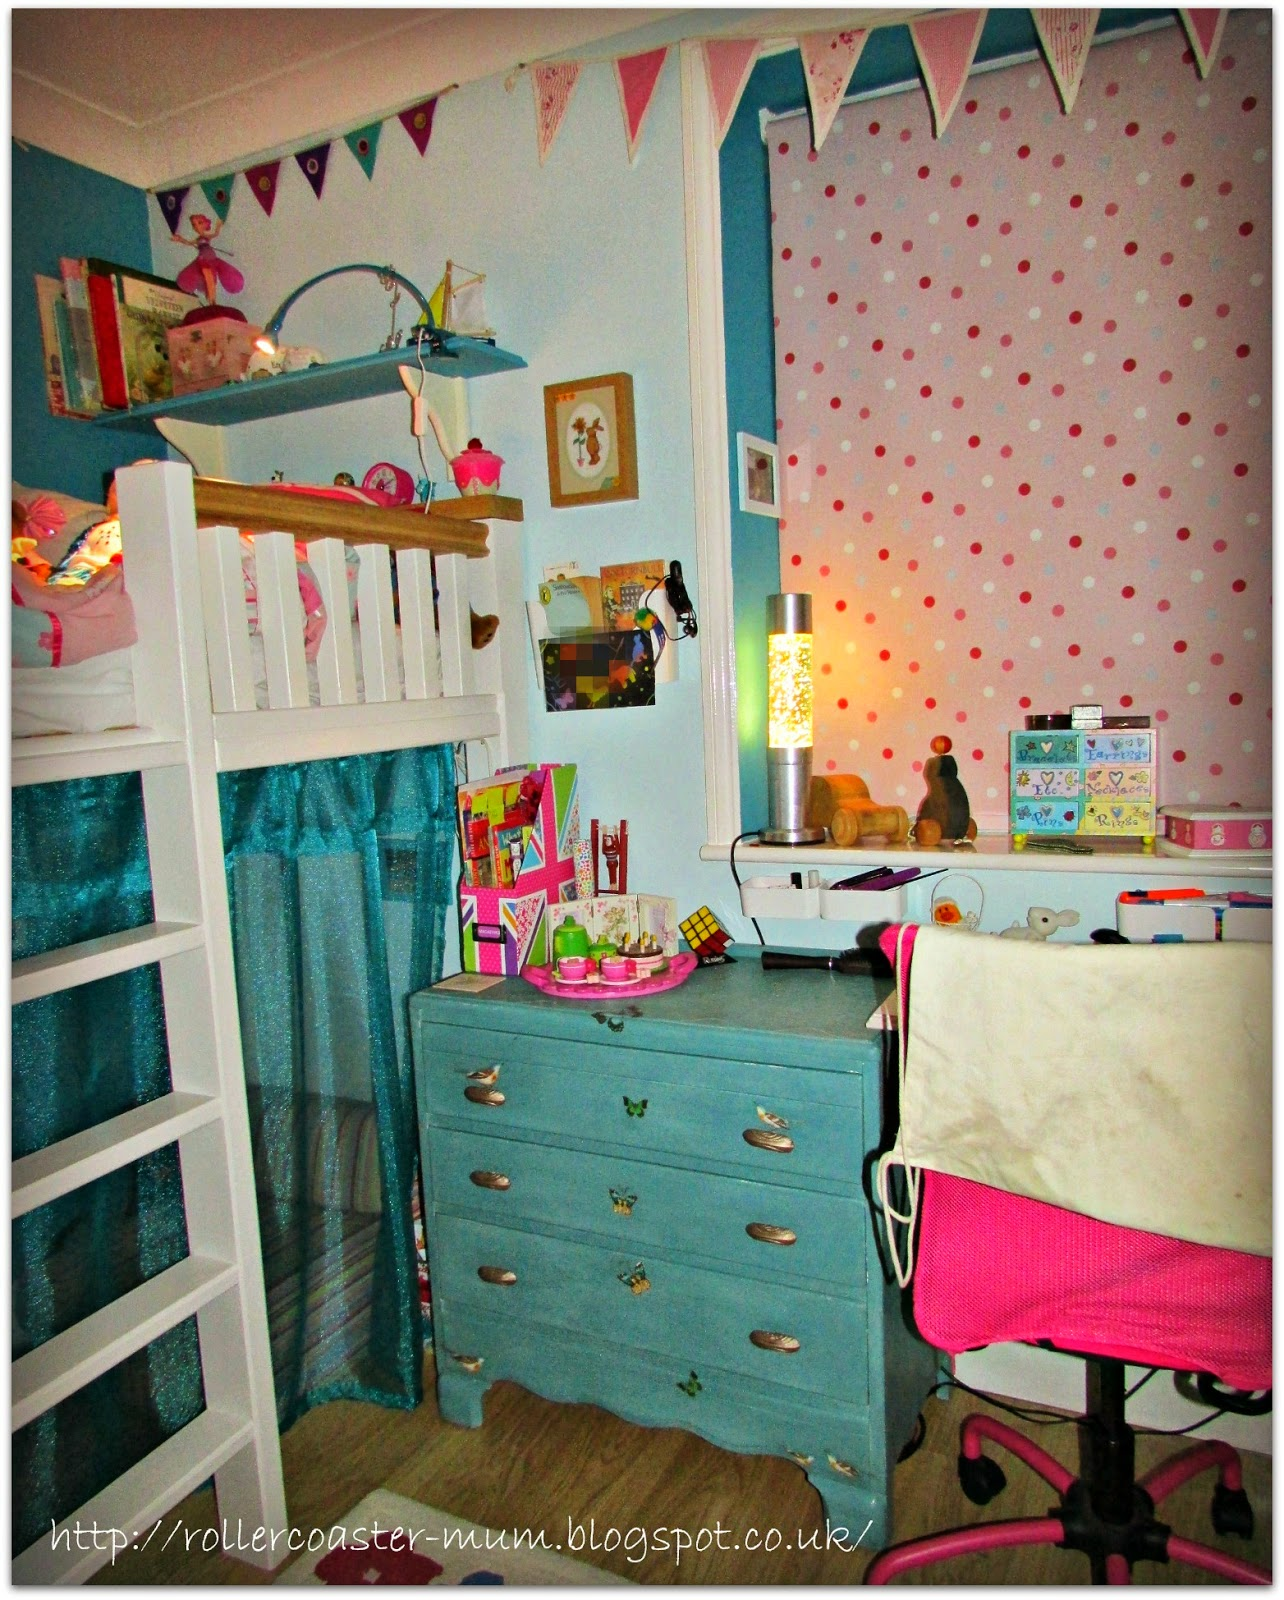 How to Change a Room from Pink to Turquoise on a budget